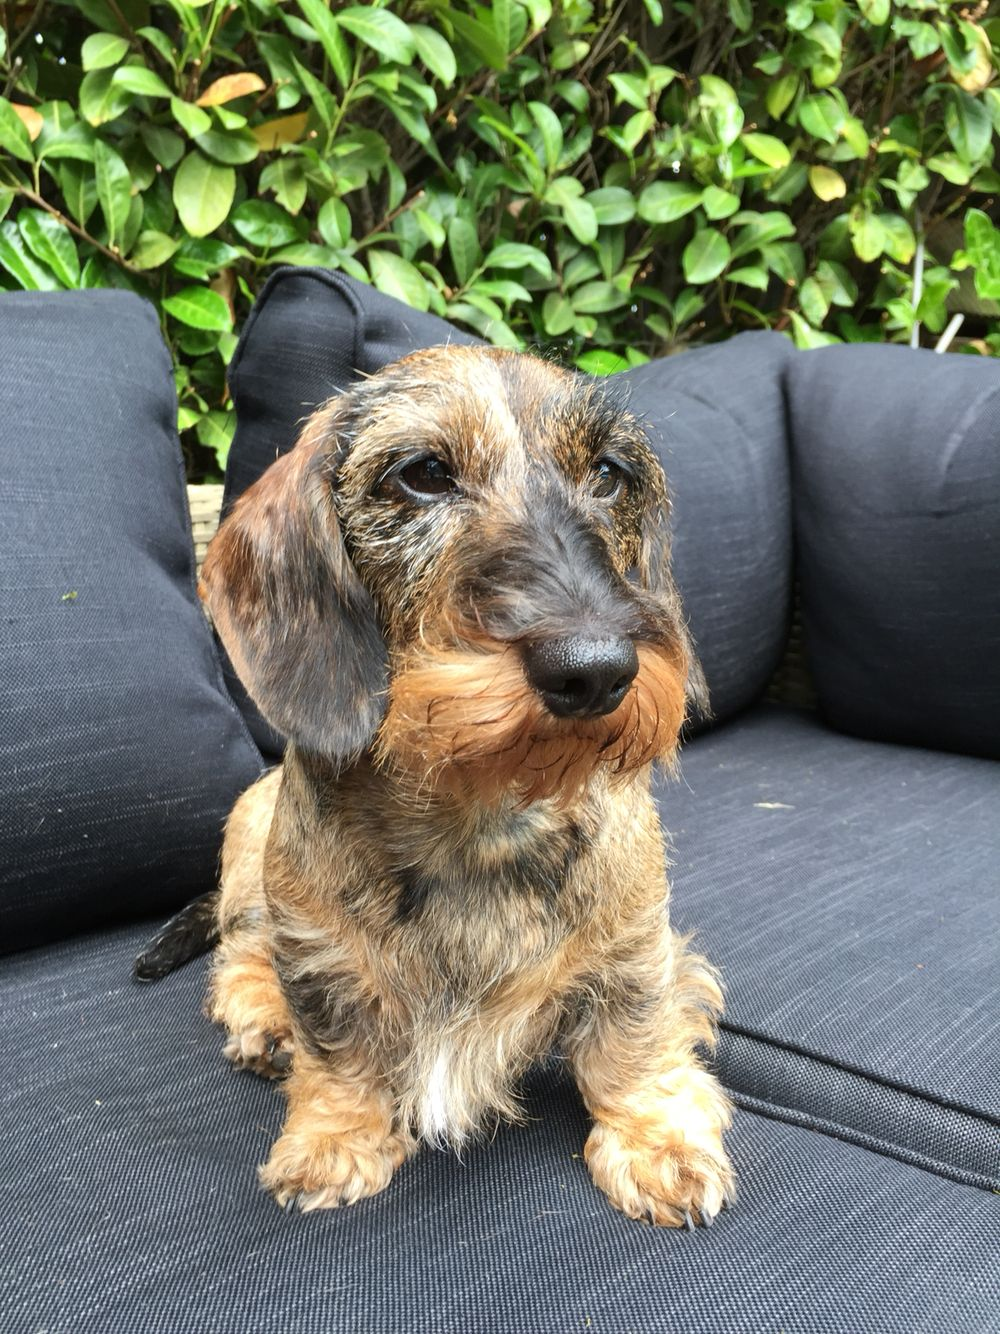 A Little Wired Haired Dachshund Dachshund Breed Wire Haired